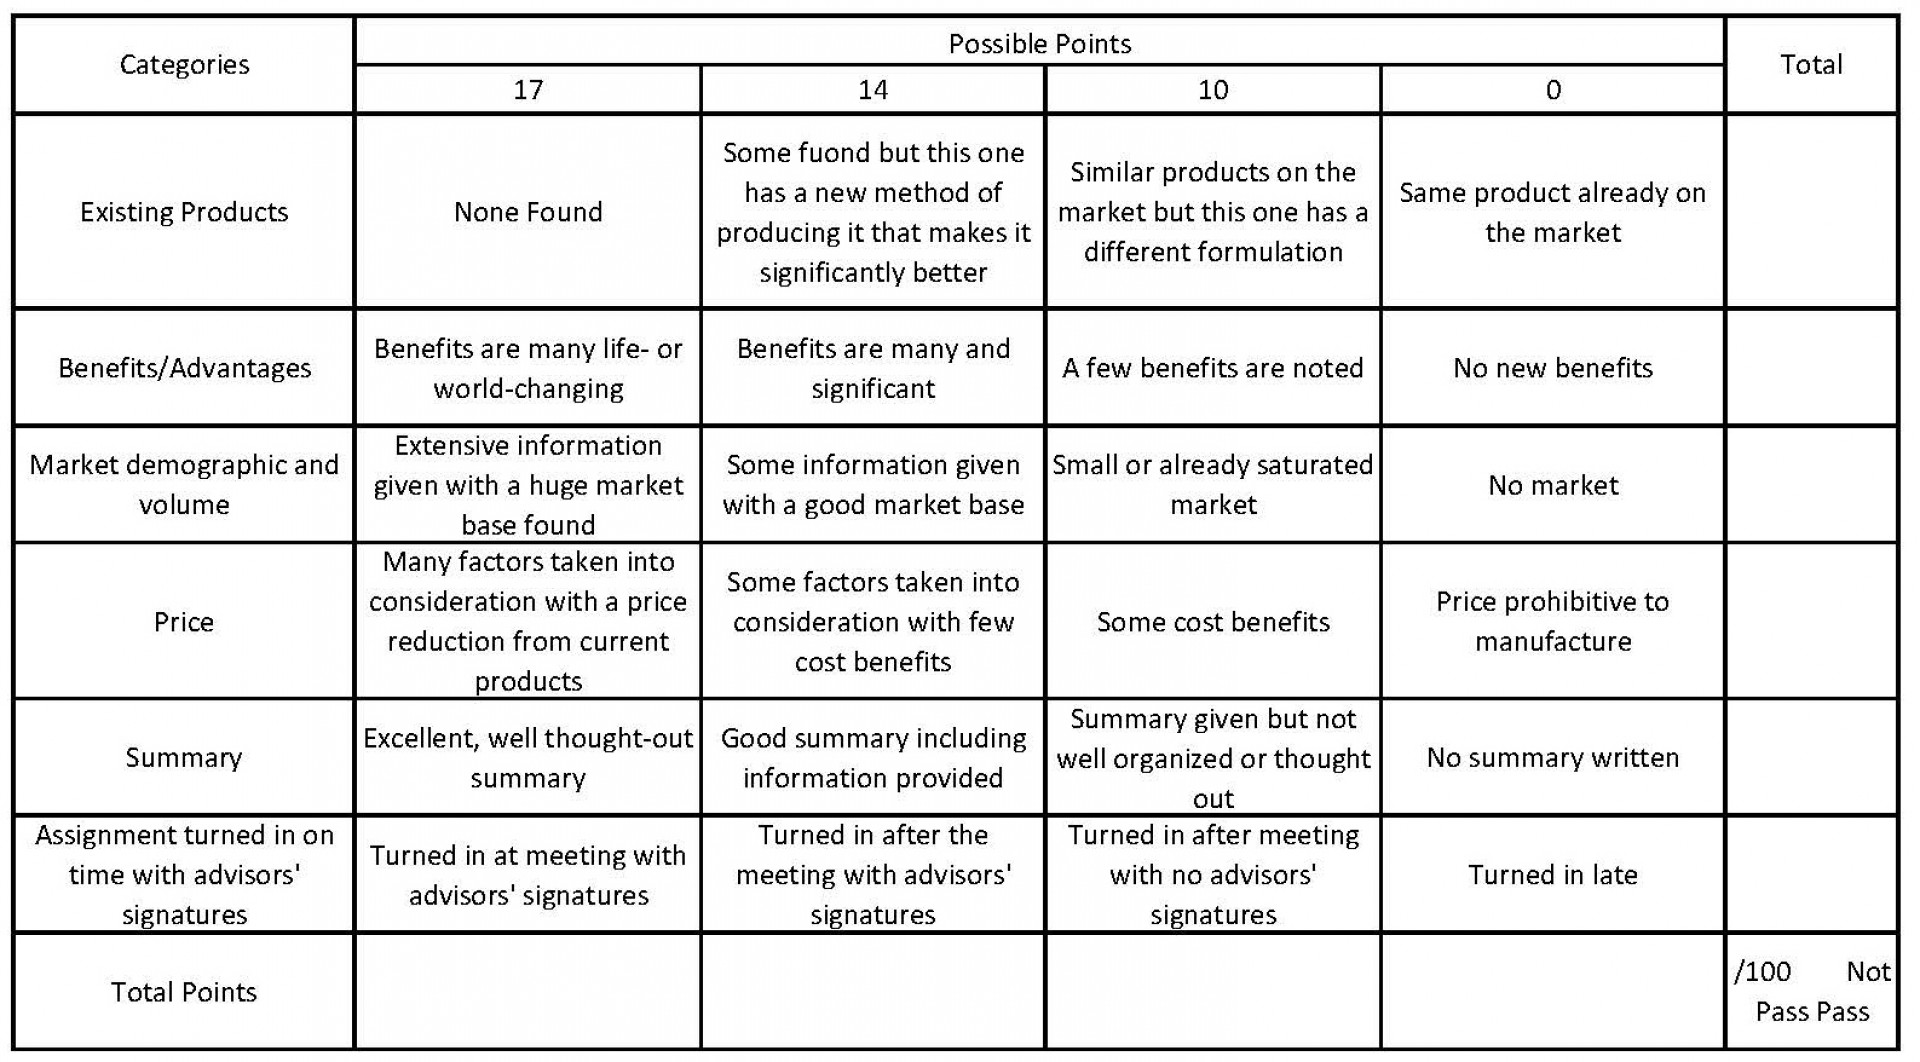 003 Apa Research Paper Grading Rubric Unusual For Using Style 1920